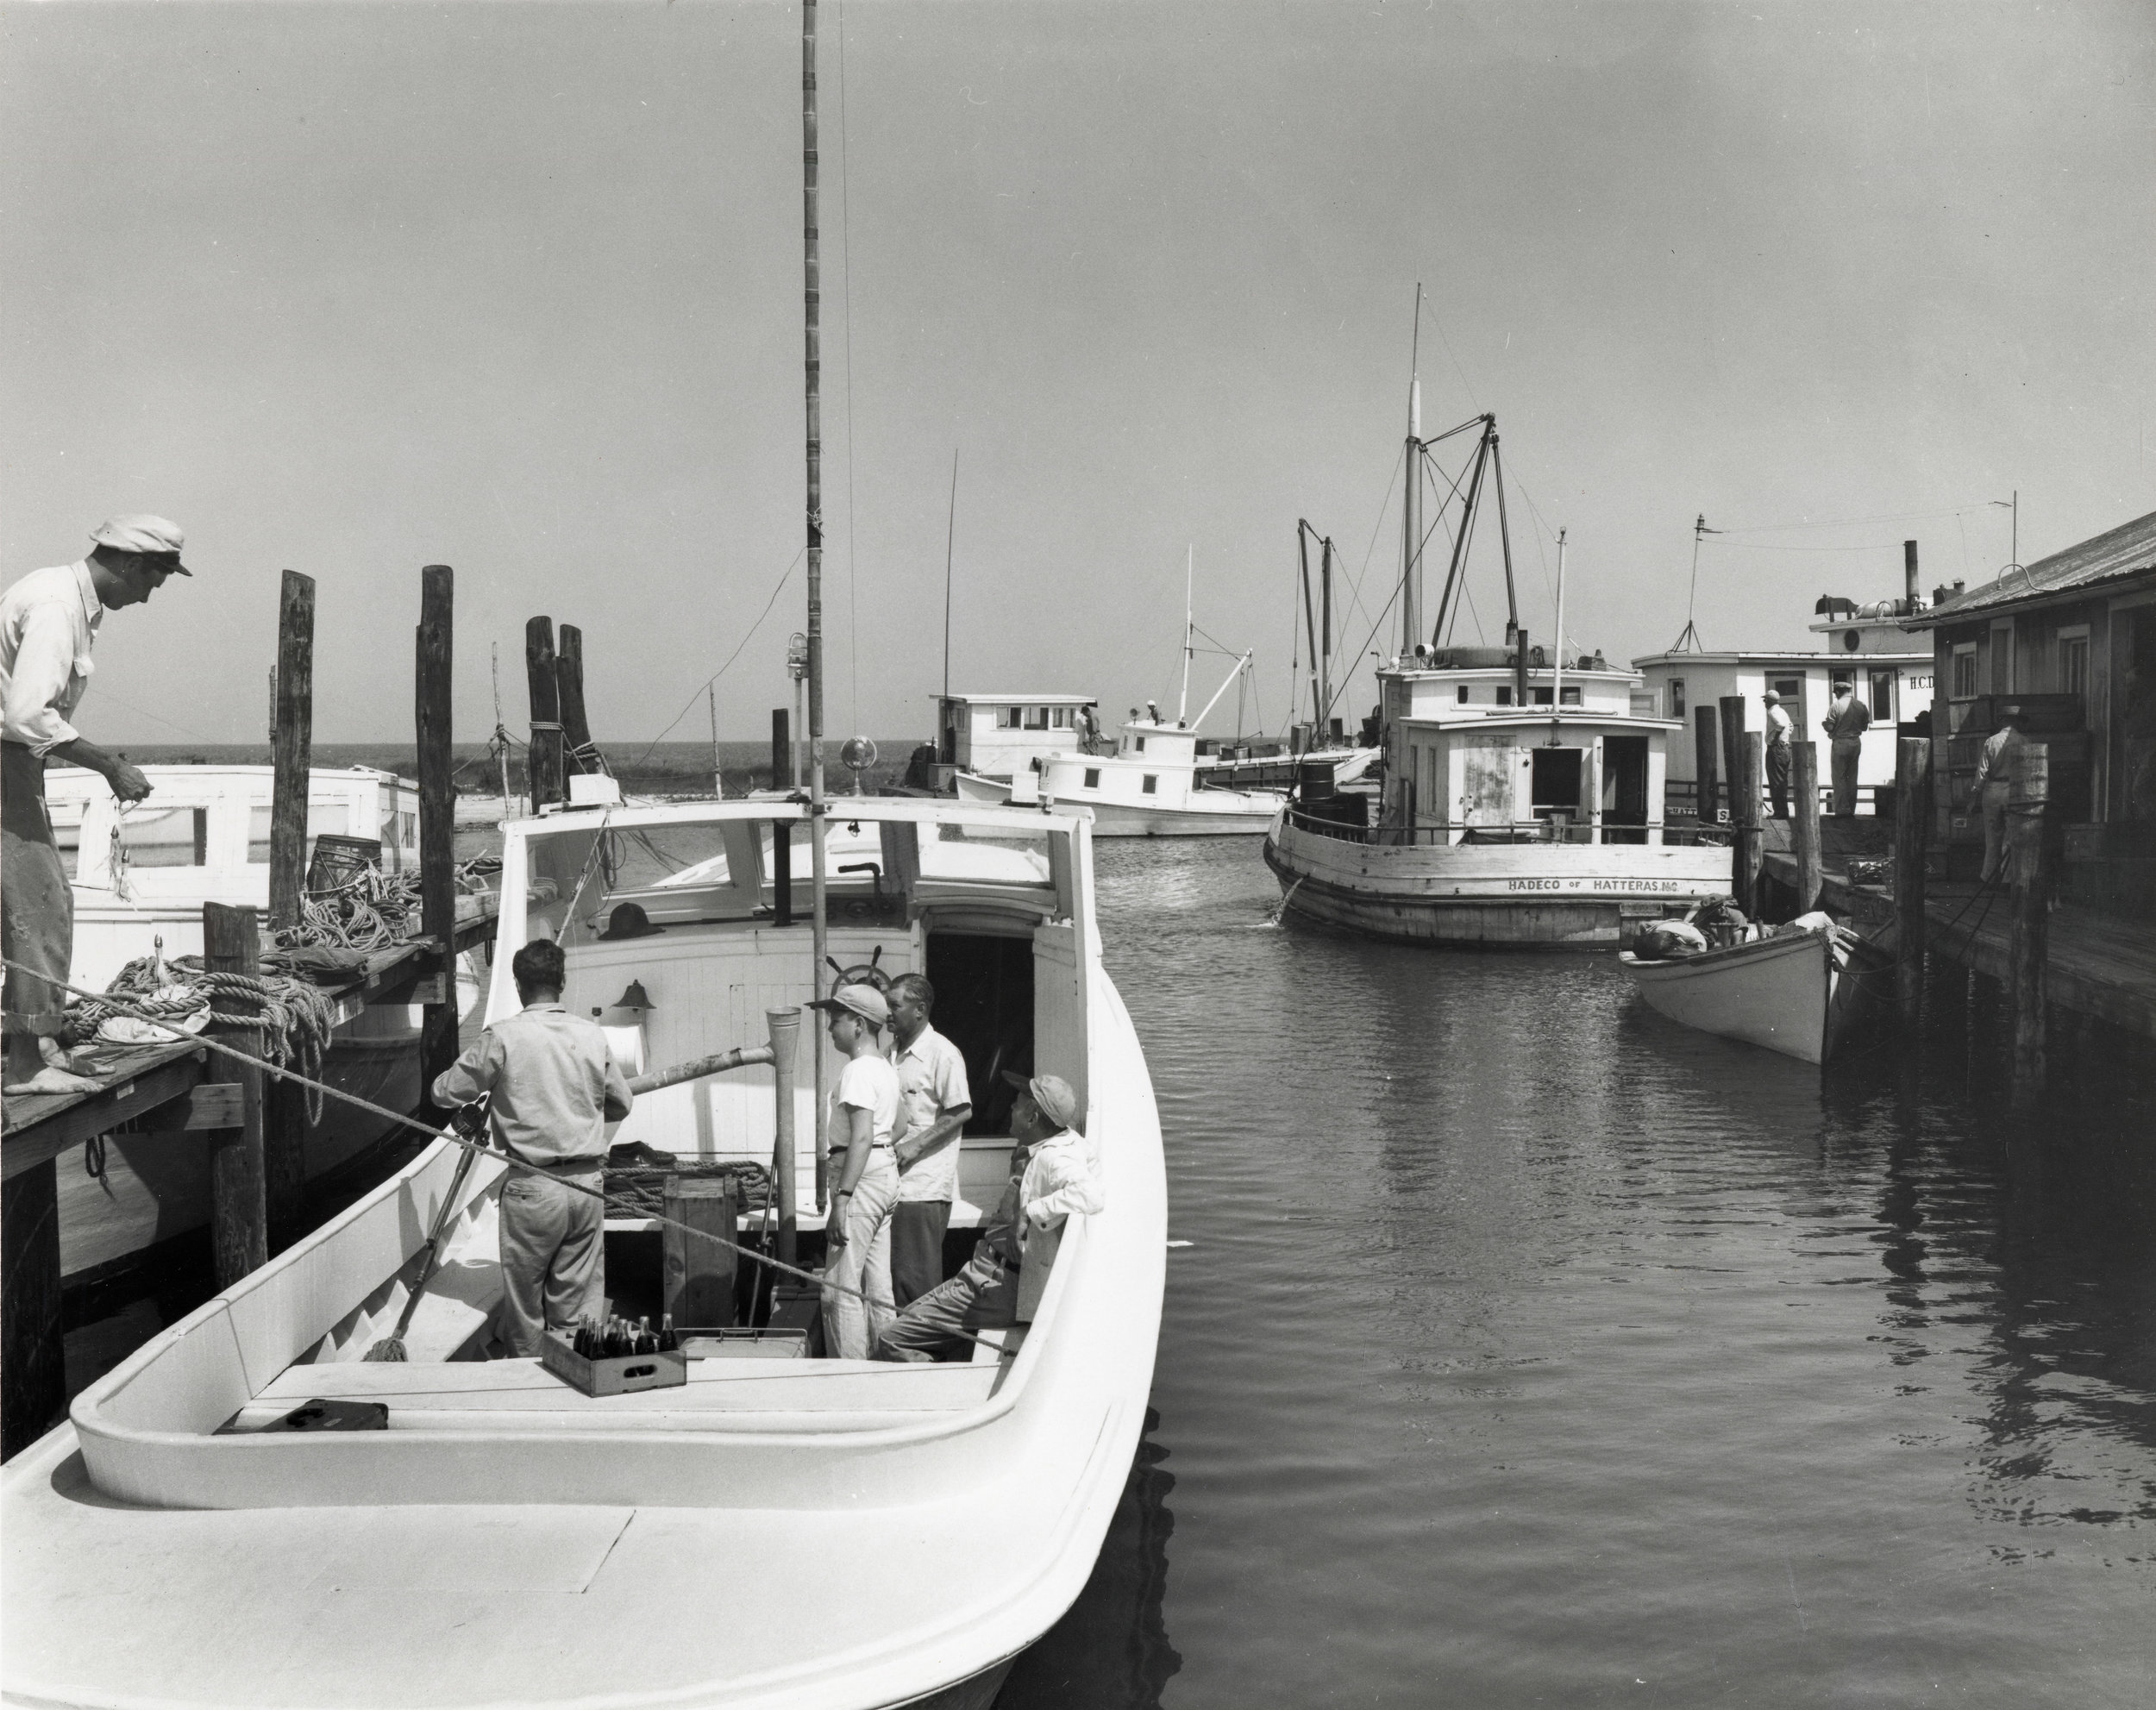 Boat Dock at Hatteras, 1948